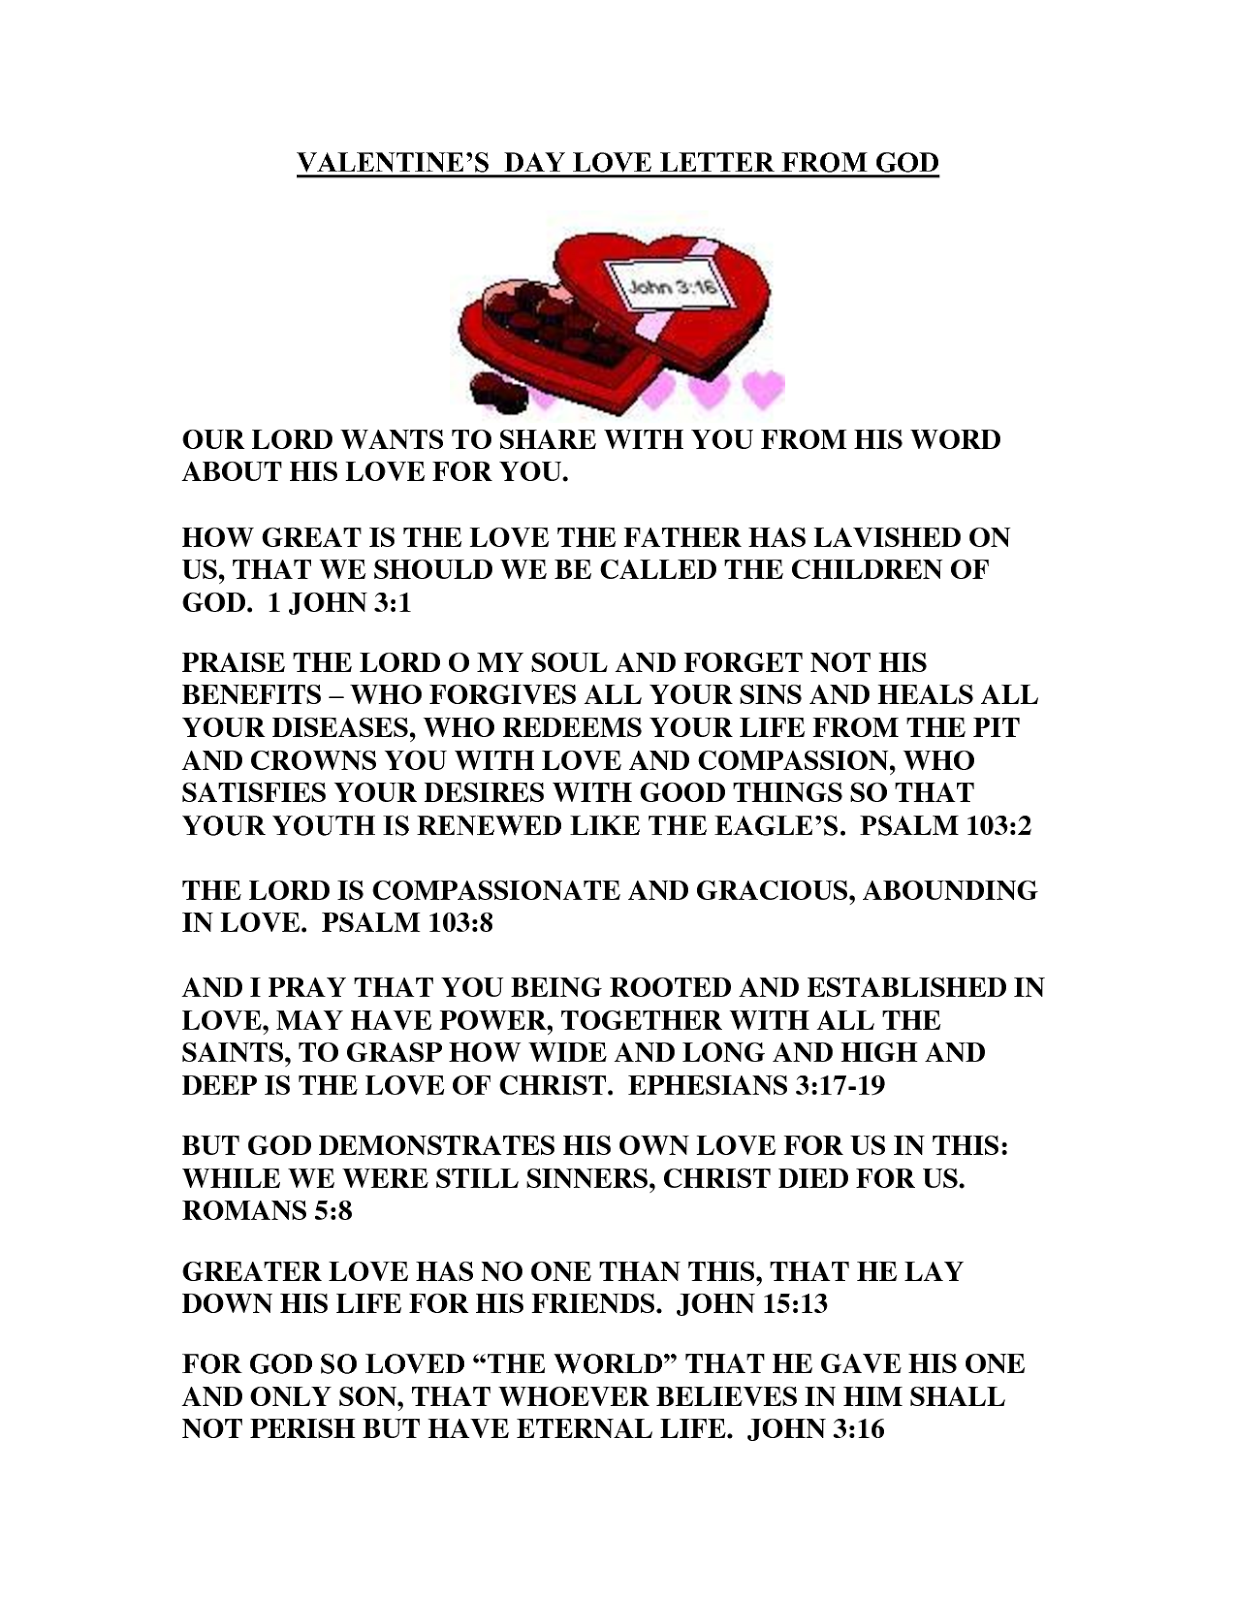 valentines day letters for him valentines day letters for him 25410 | valentines day love letters for him and her (3)